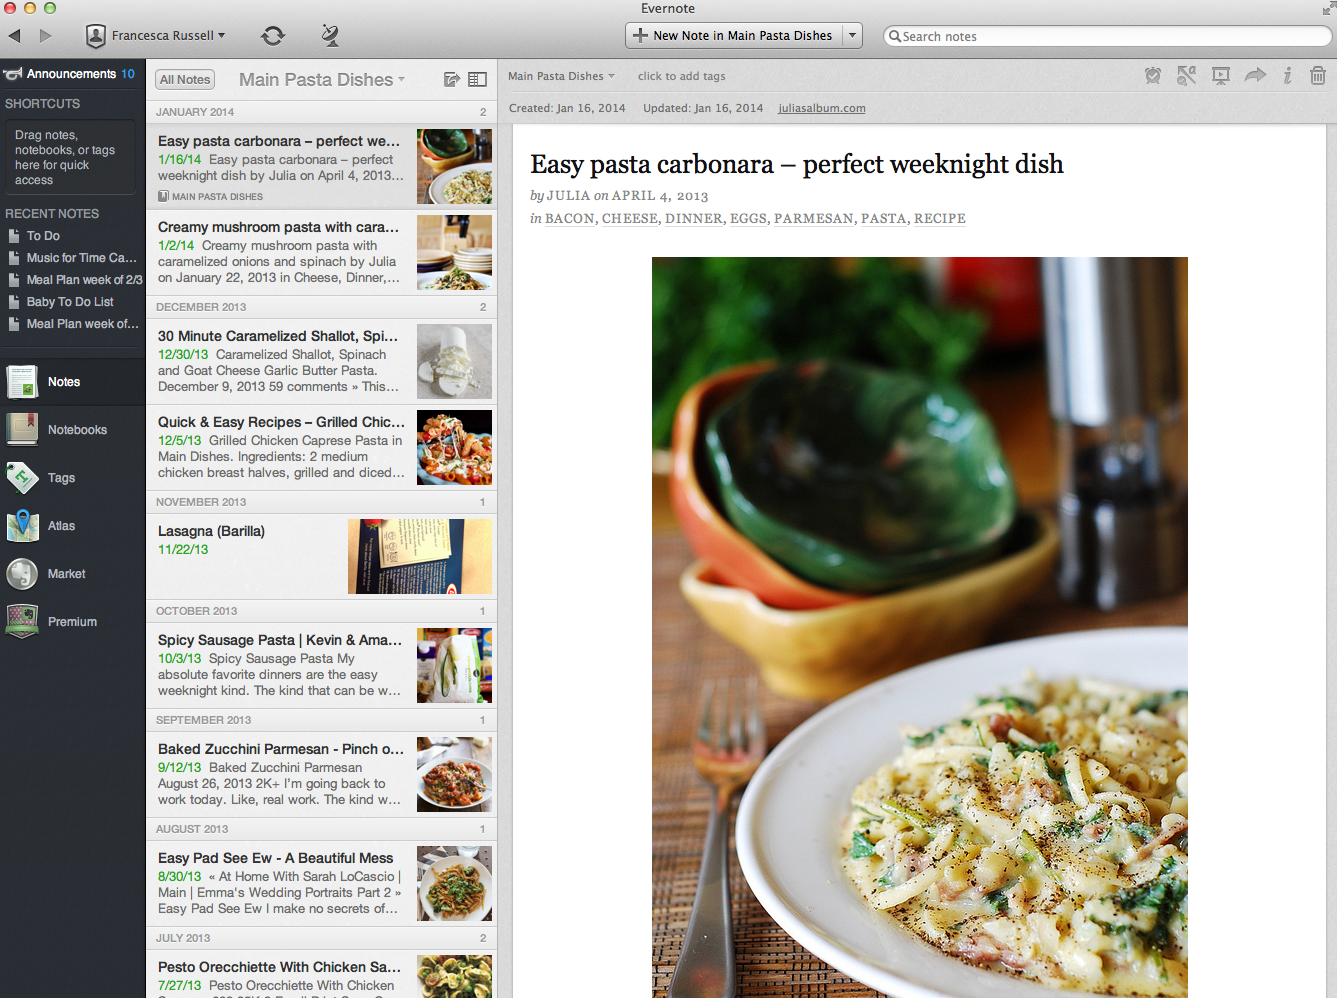 A recipe I clipped from the web to Evernote.